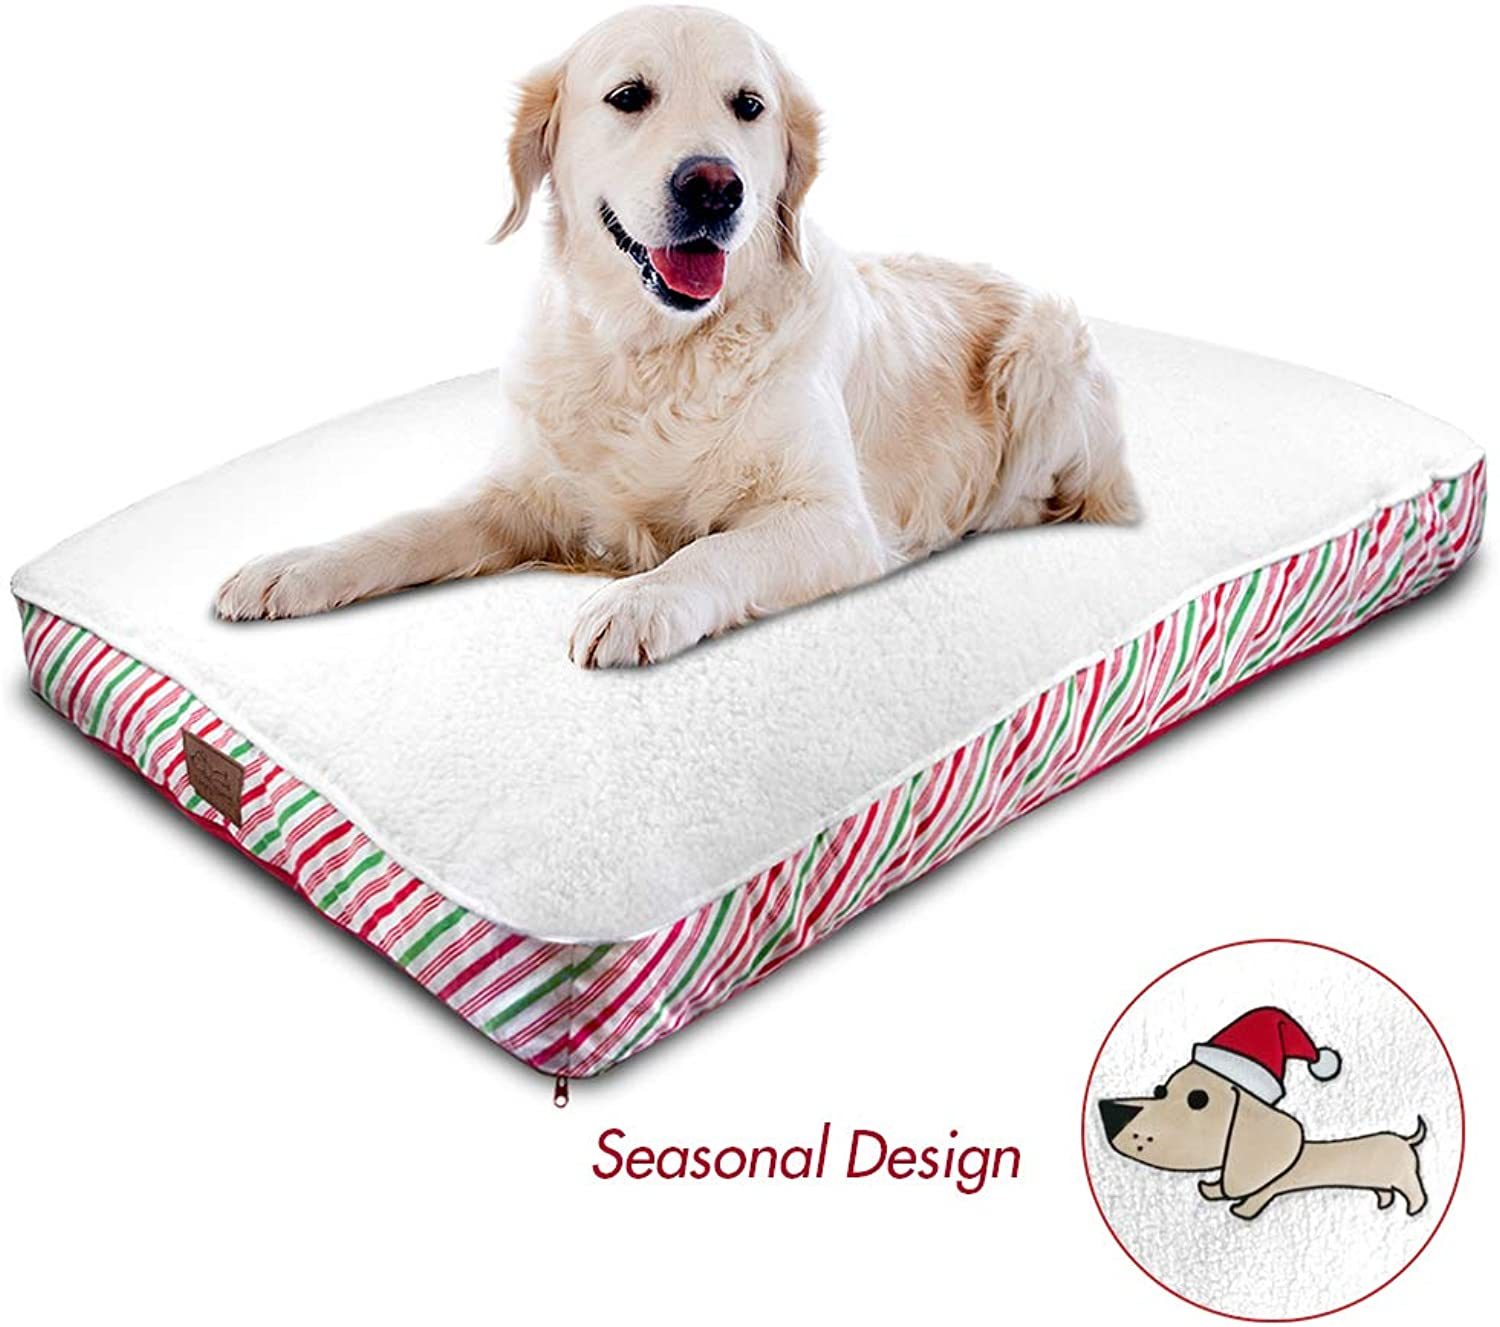 Floppy Dawg Extra Large Dog Bed with Christmas Dog Bed Cover   Stuffed to 6 Inches High with Memory Foam Pieces   for XL Dogs 80 Pounds and Up